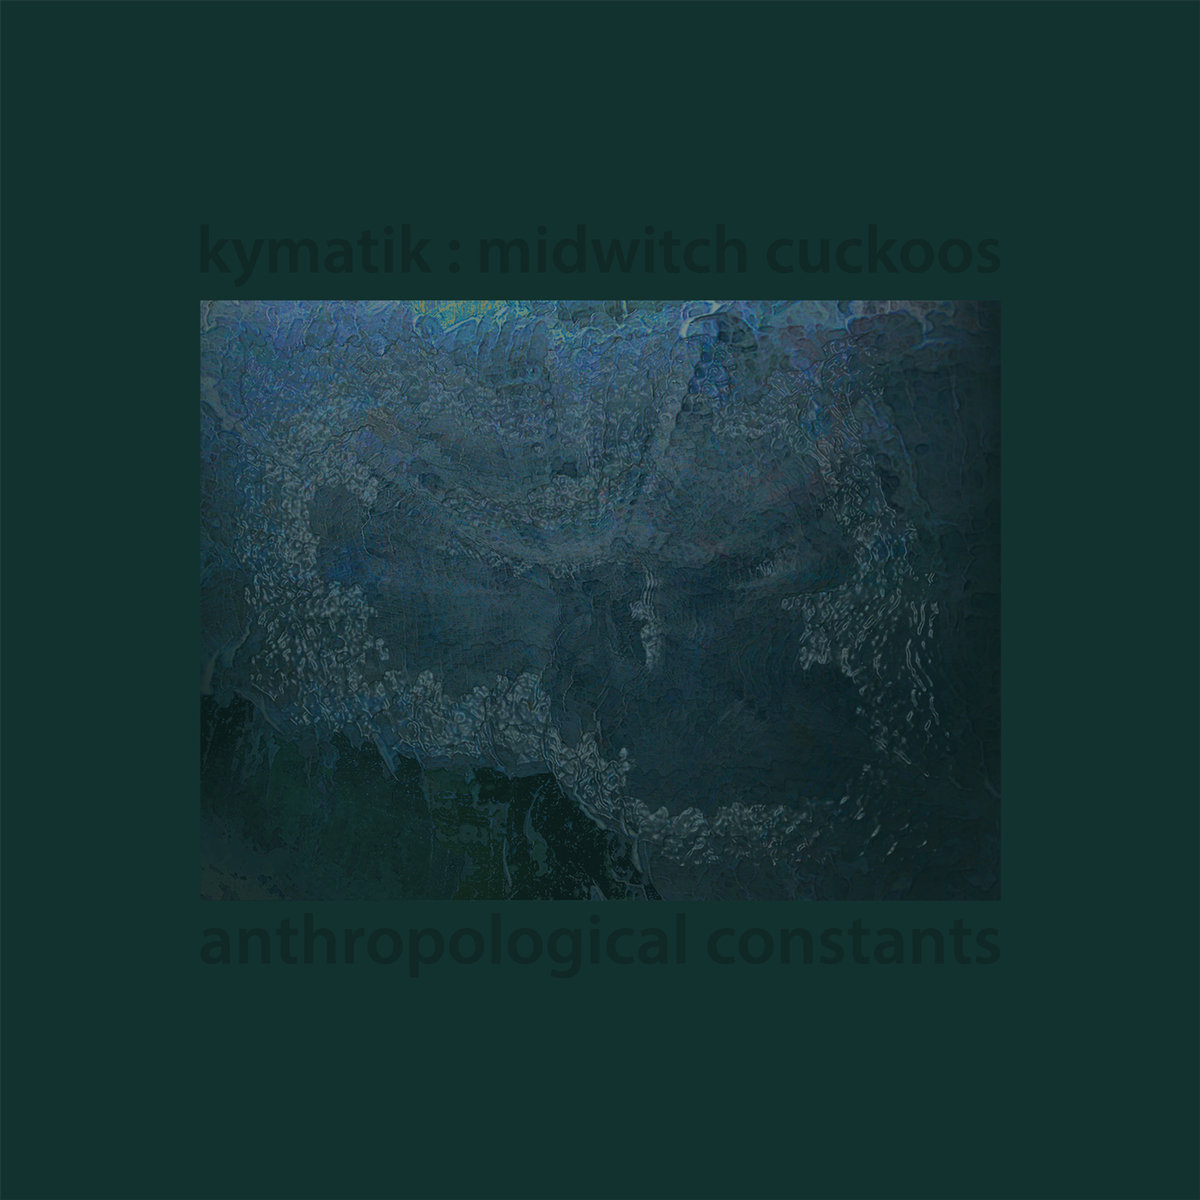 kymatik - Anthropological Constants